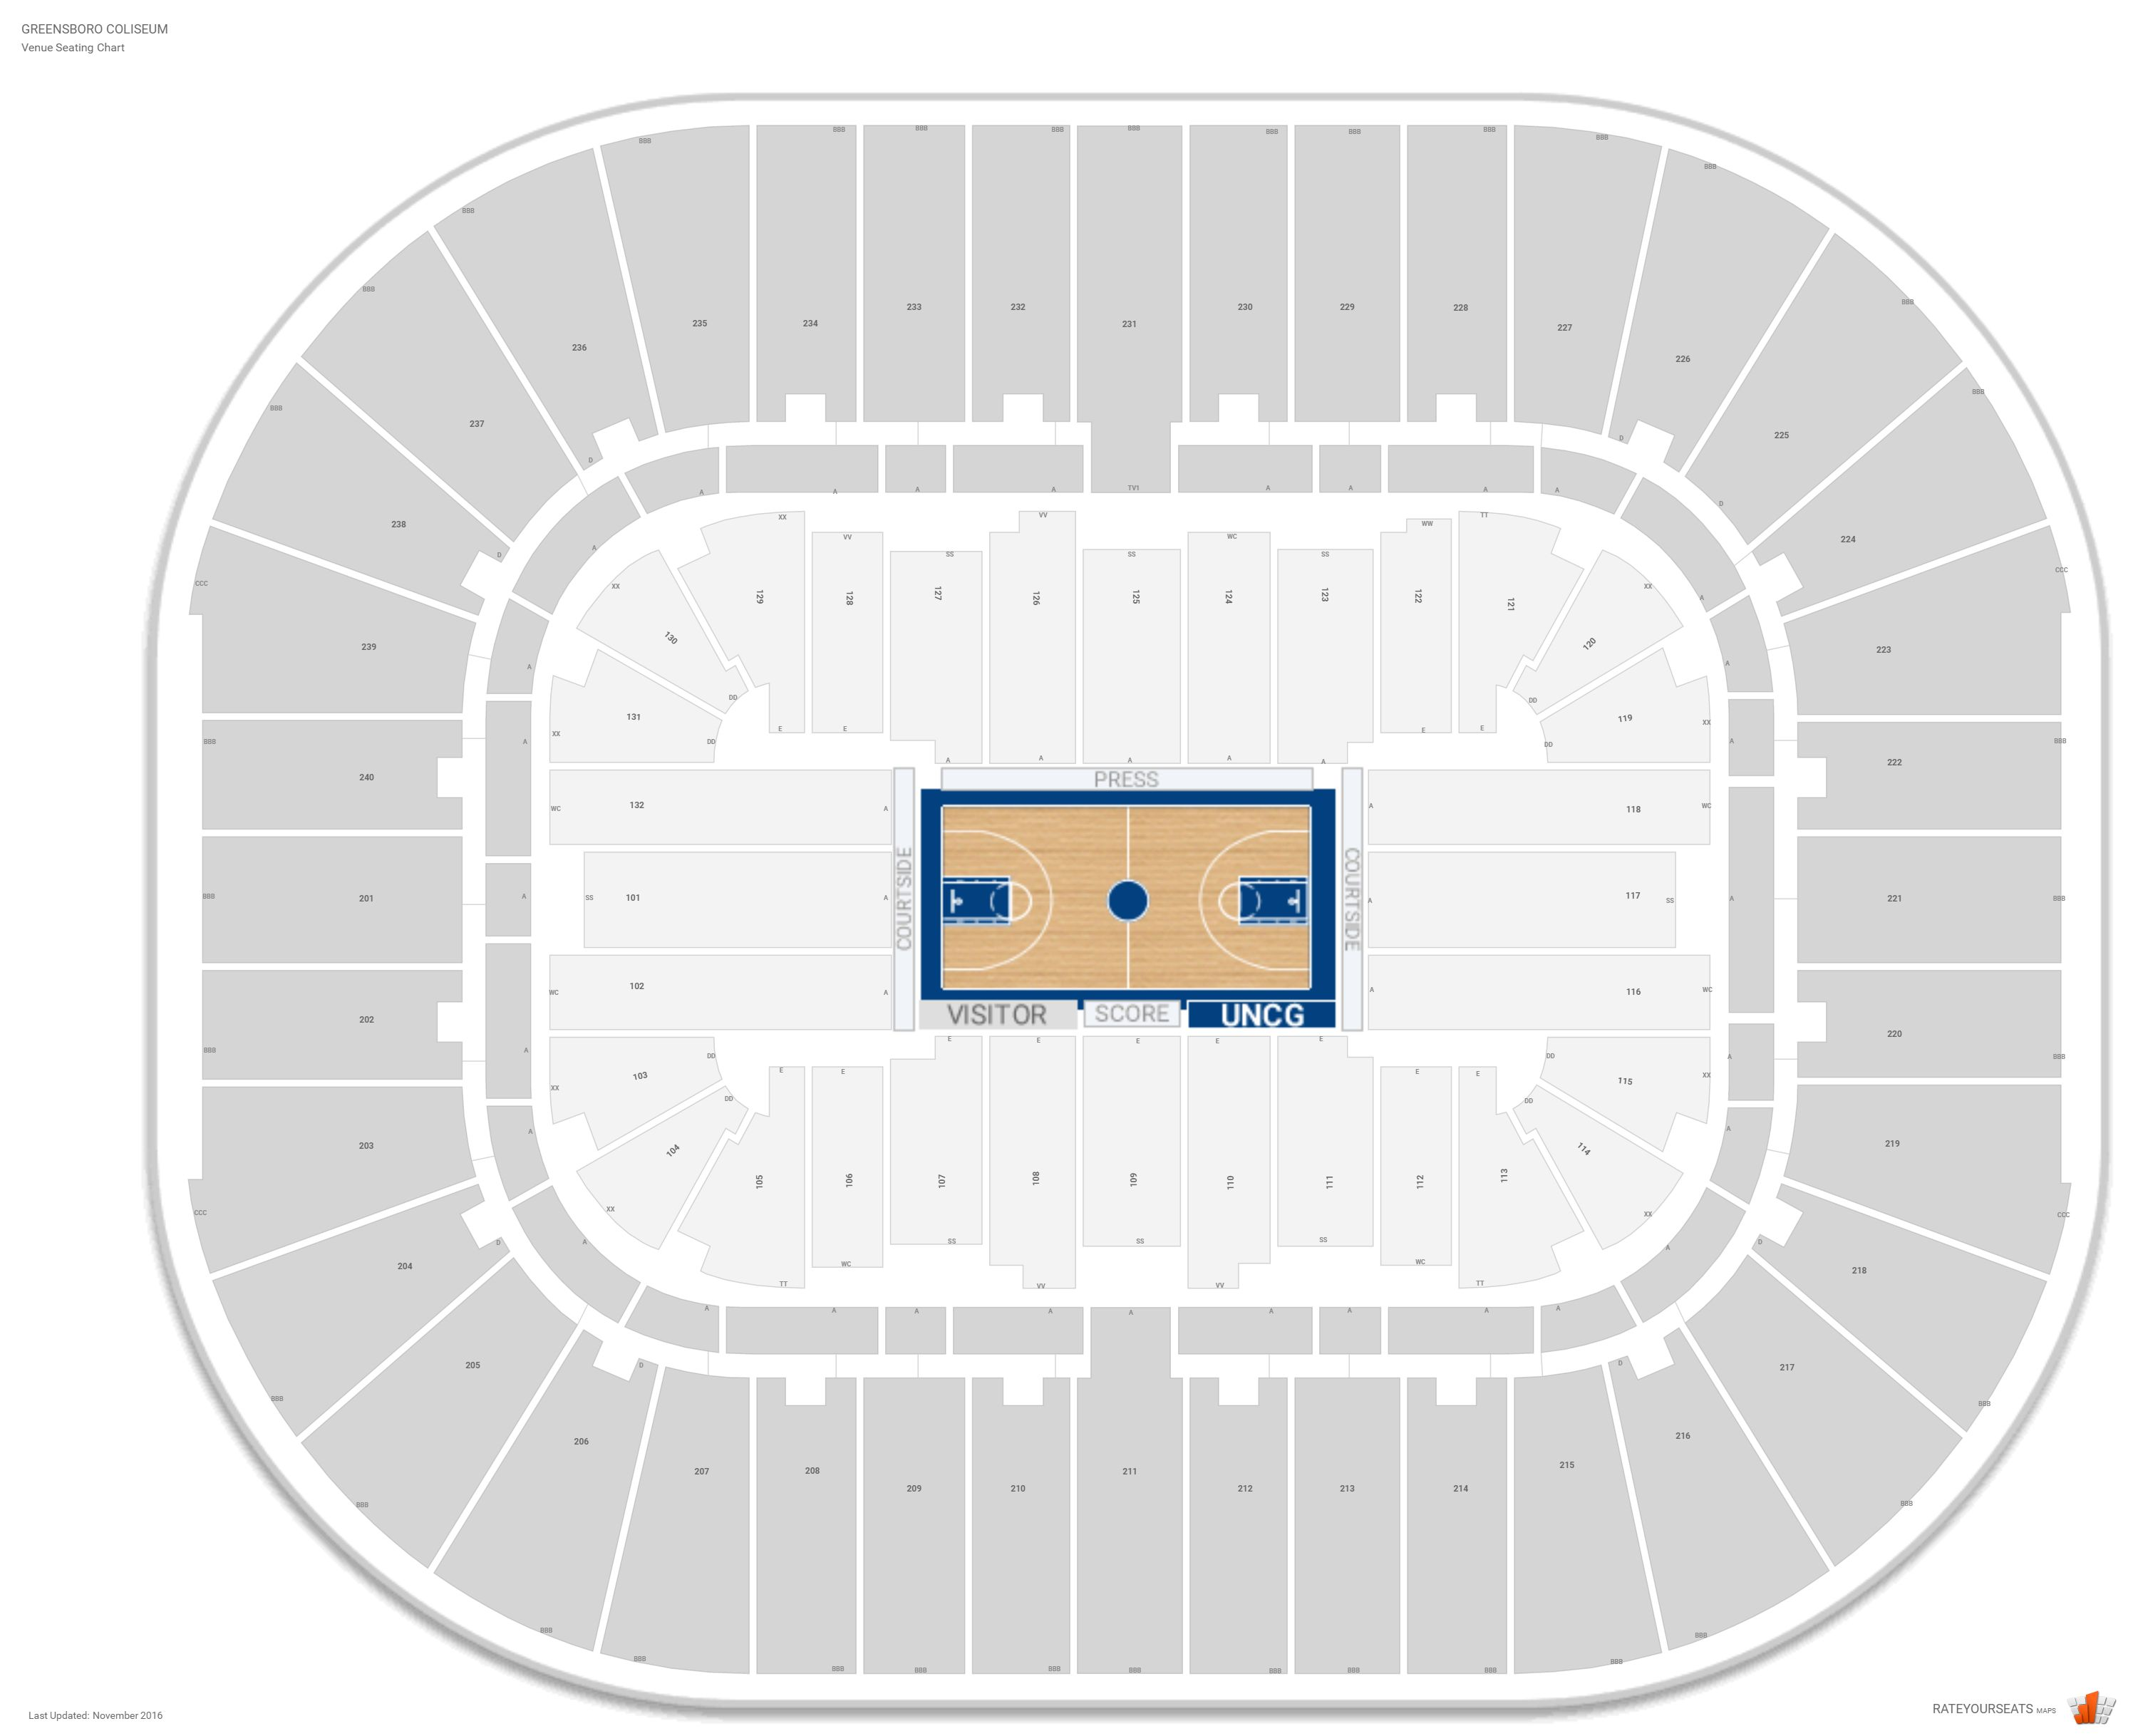 Greensboro Coliseum Seating Chart With Row Numbers